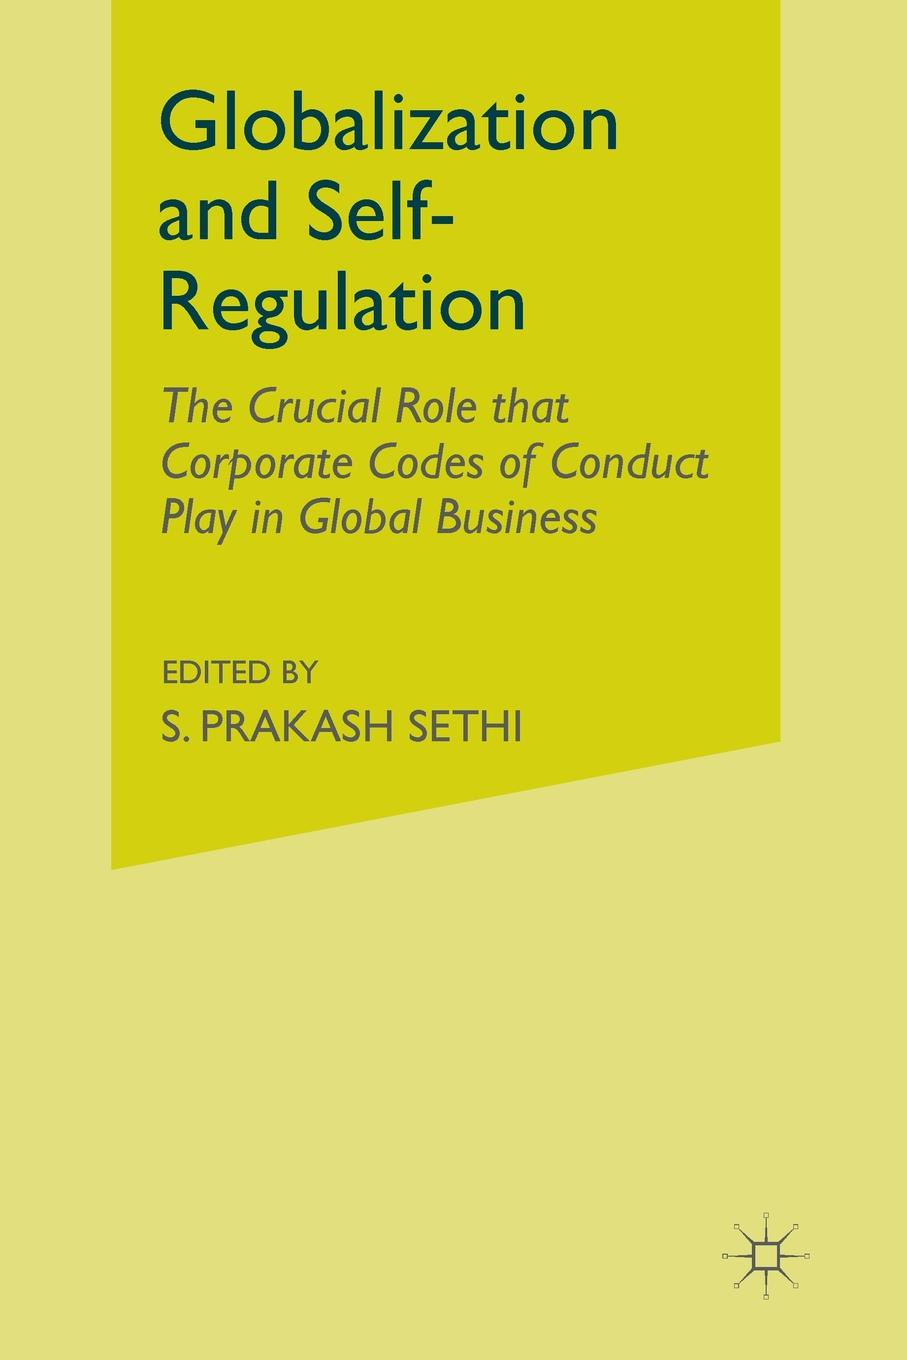 где купить S. Sethi Globalization and Self-Regulation. The Crucial Role That Corporate Codes of Conduct Play in Global Business недорого с доставкой